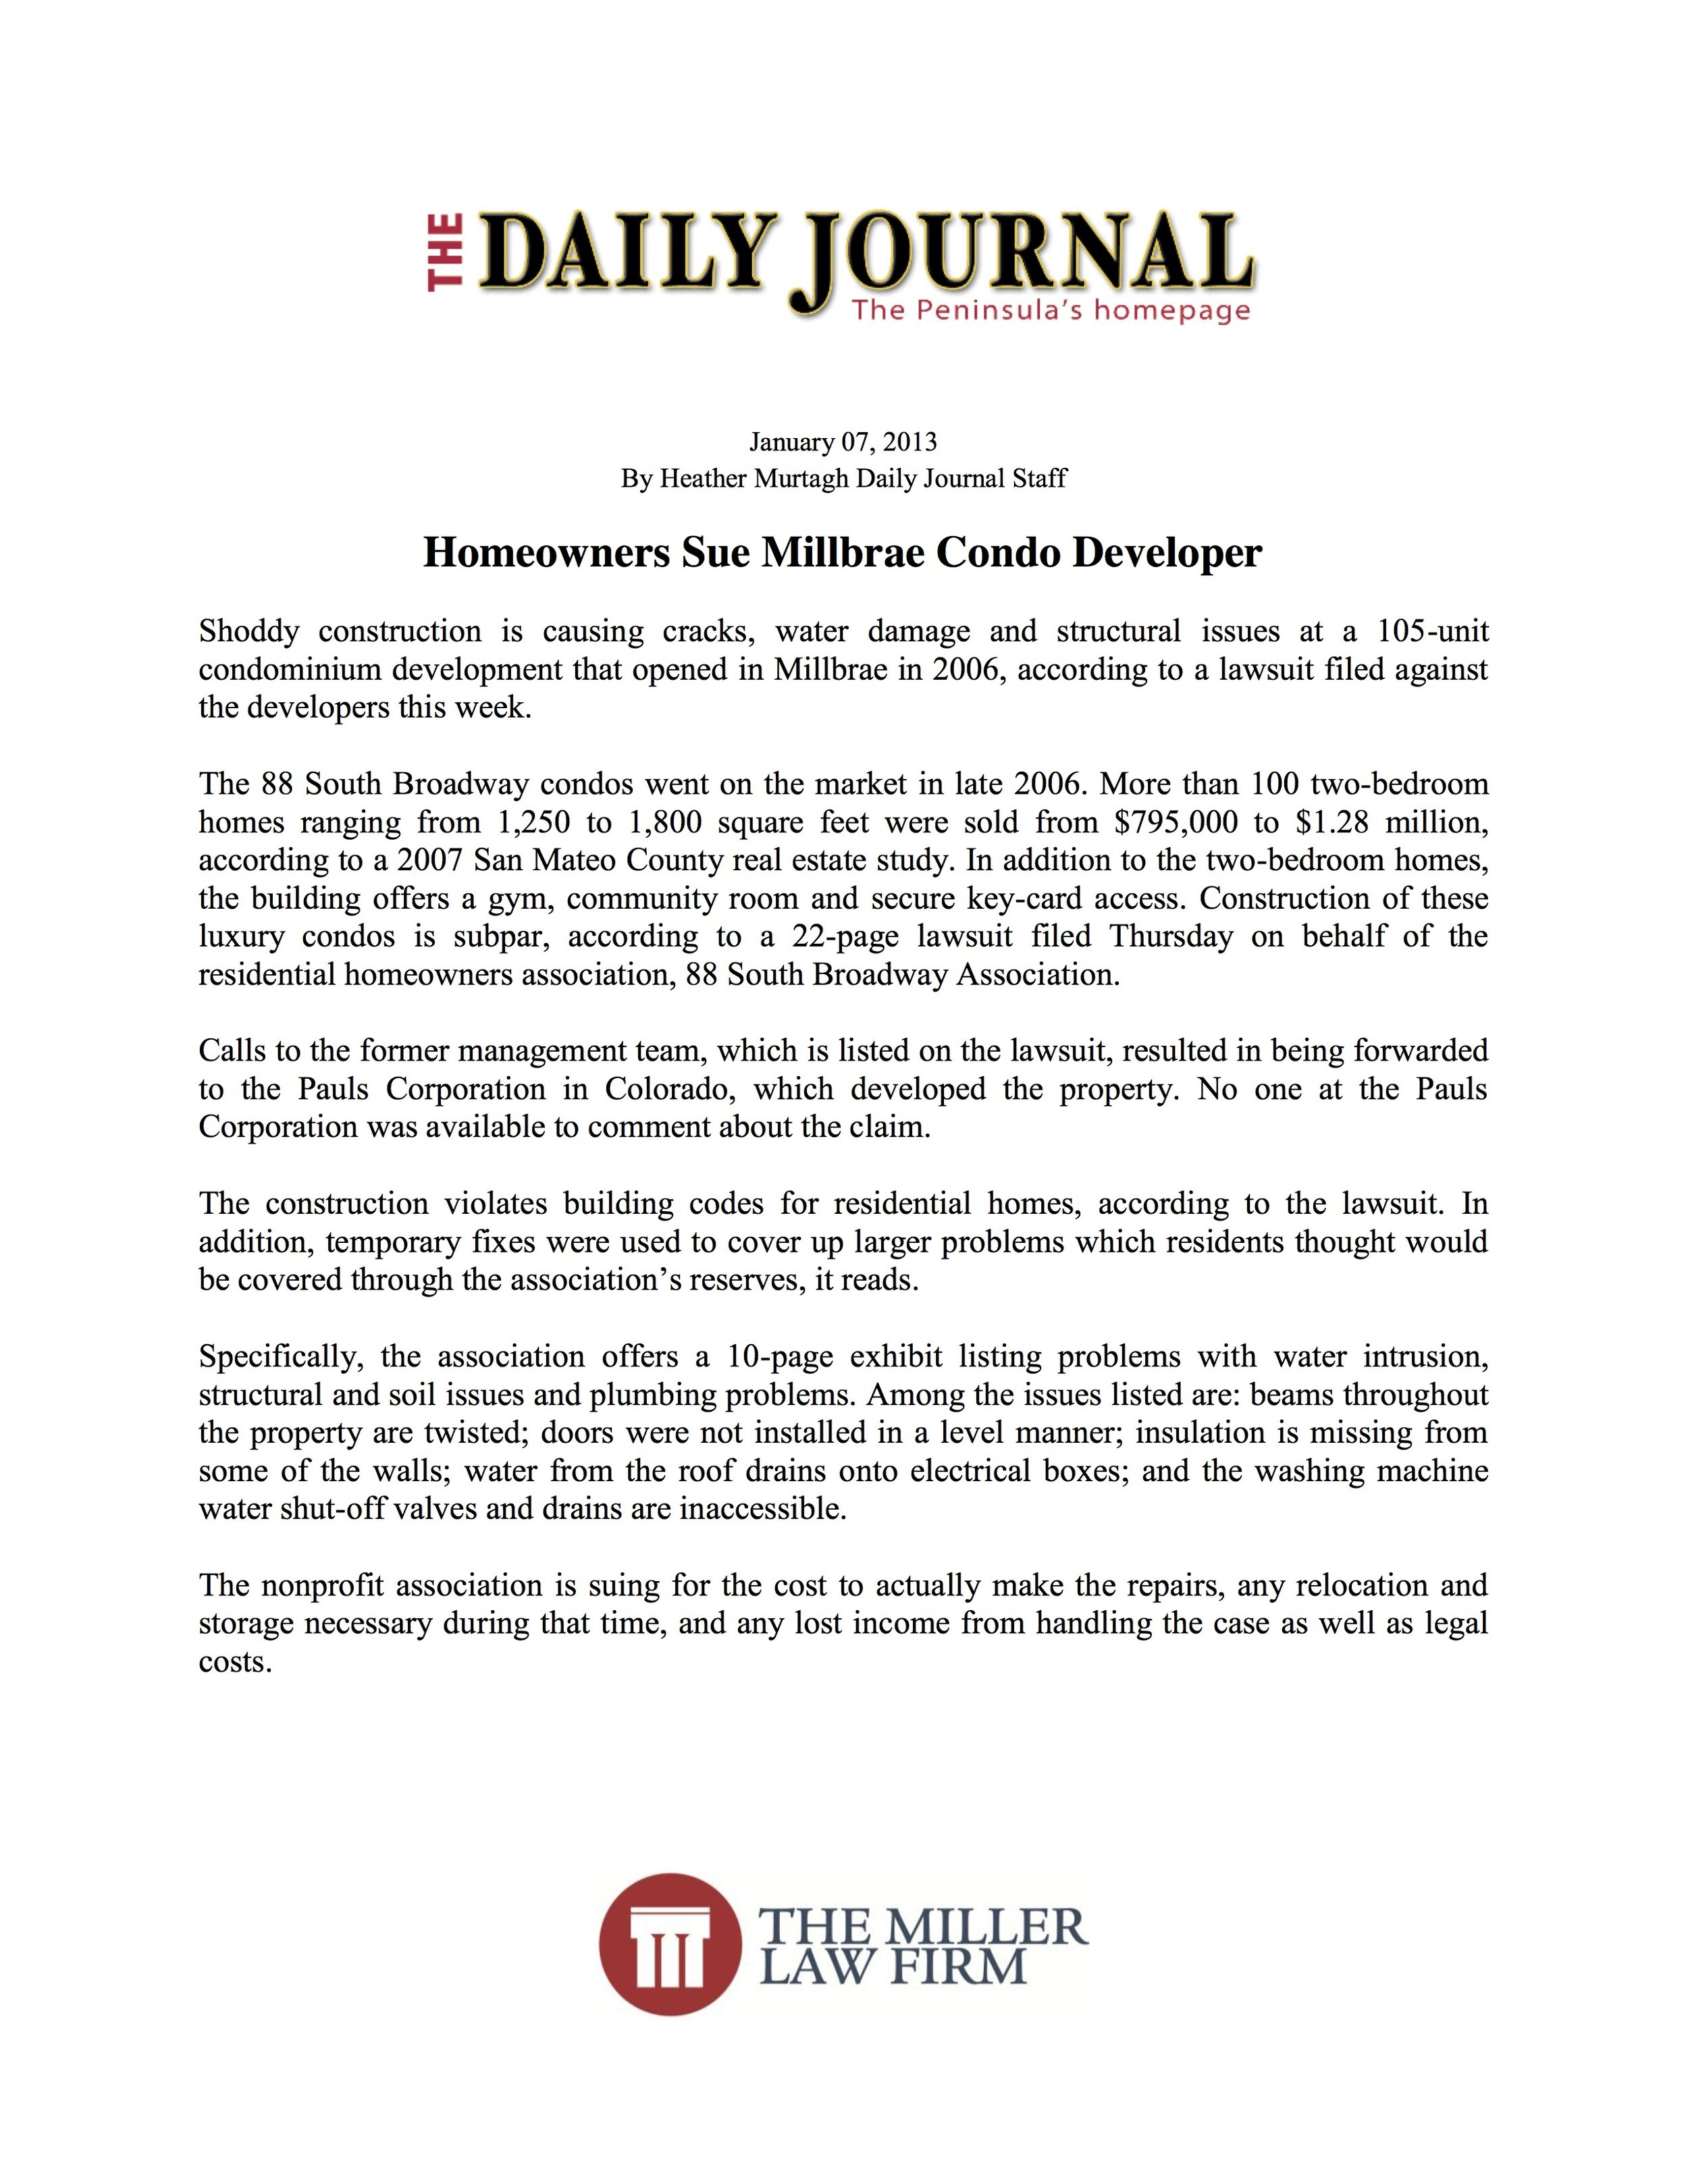 Daily Journal - Homeowners Sue Millbrae Condo Developer